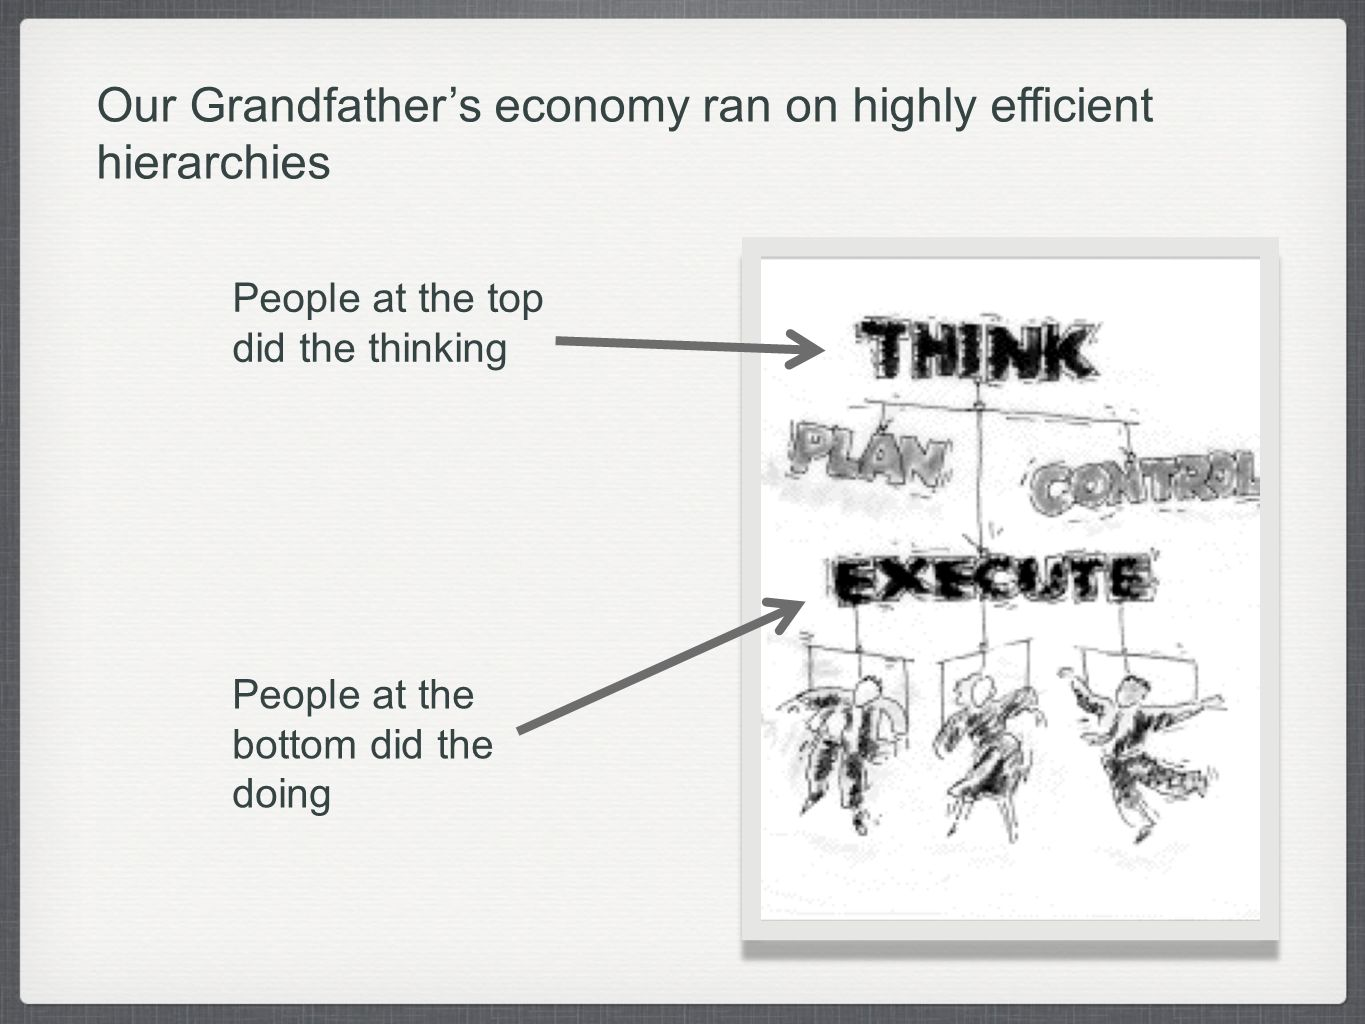 Our Grandfathers economy ran on highly efficient hierarchies People at the top did the thinking People at the bottom did the doing